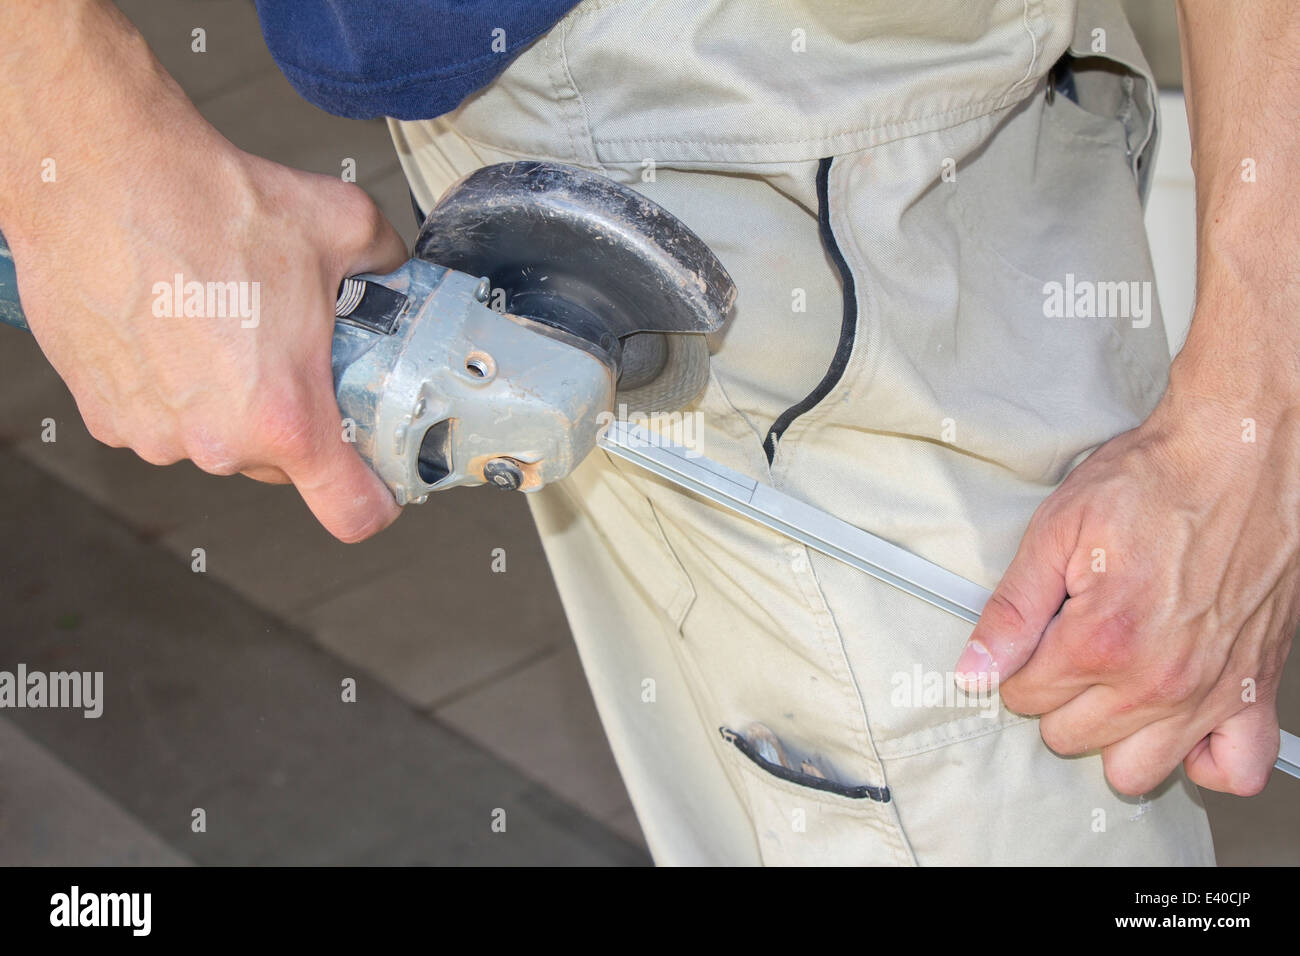 Worker cutting aluminum with angle grinder in workshop - Stock Image